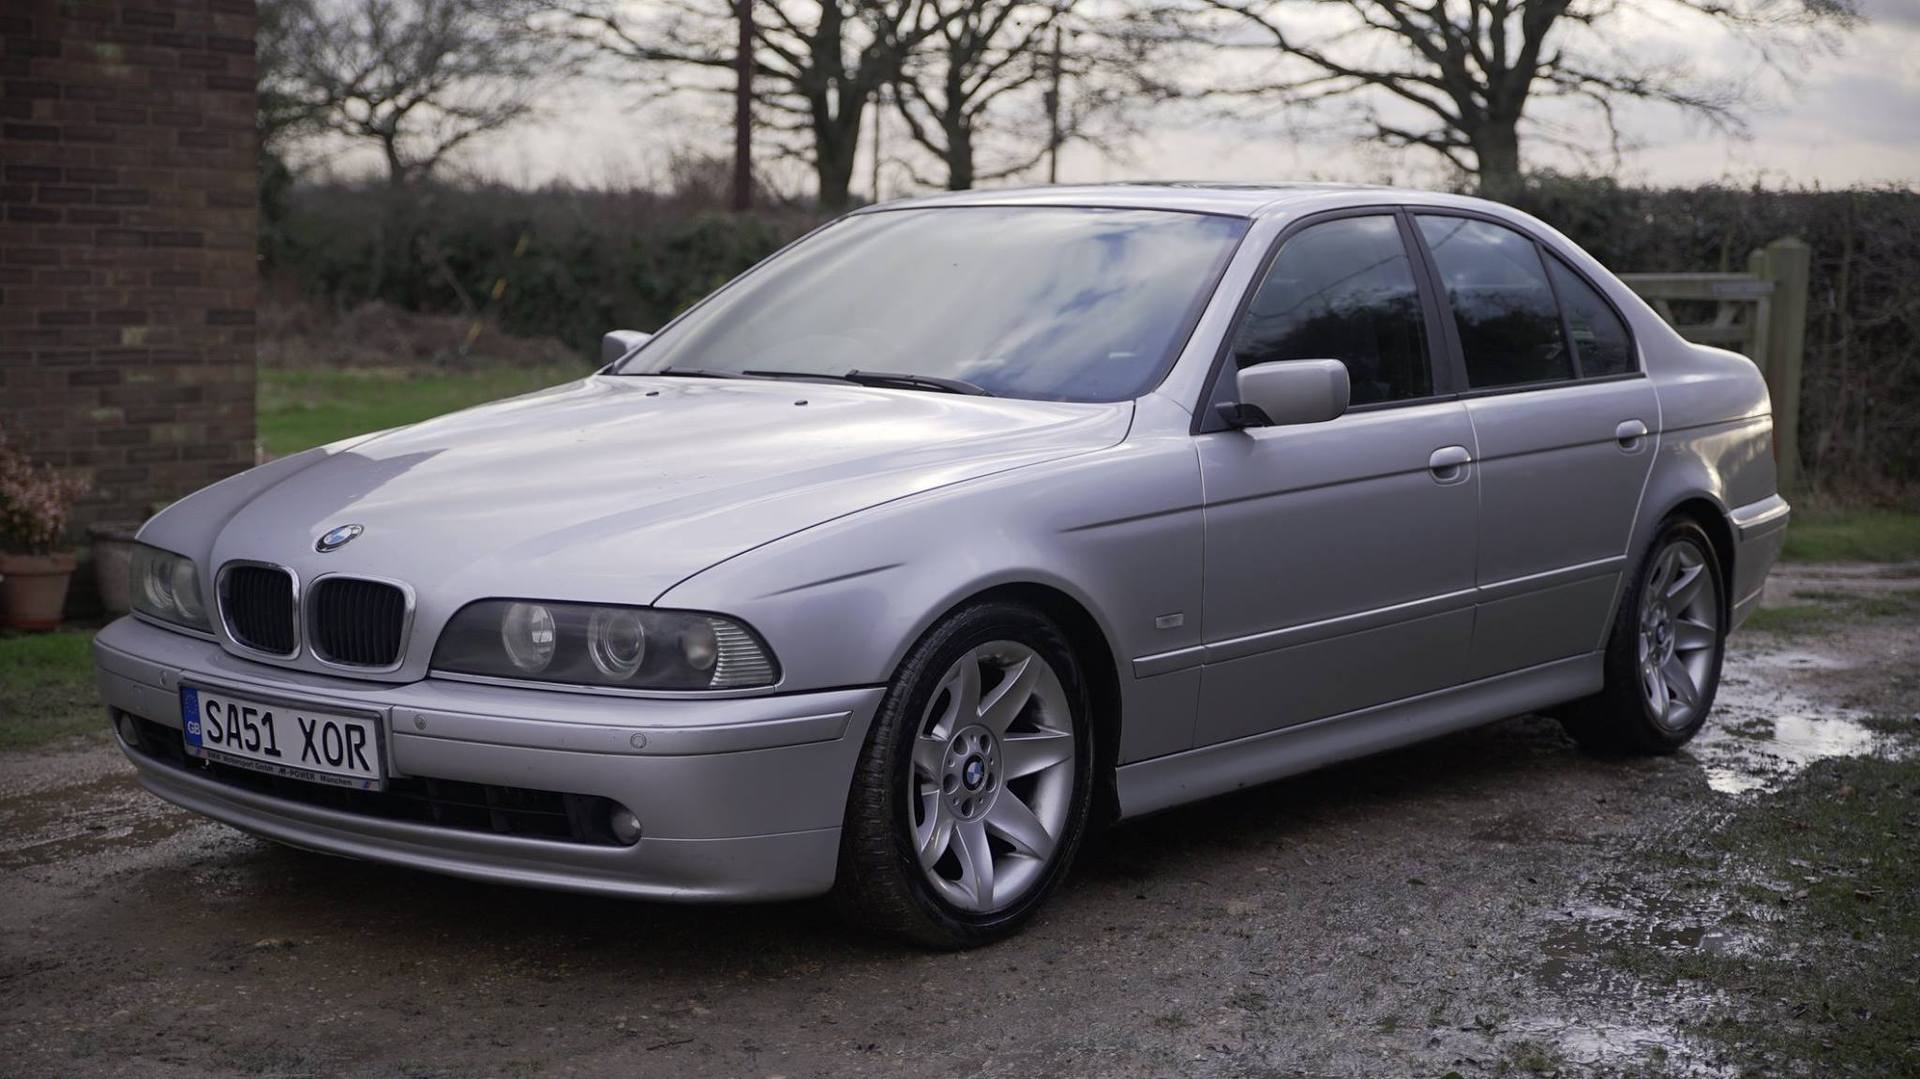 For Sale Bmw E39 525 Tds Diesel 2001 With Mot